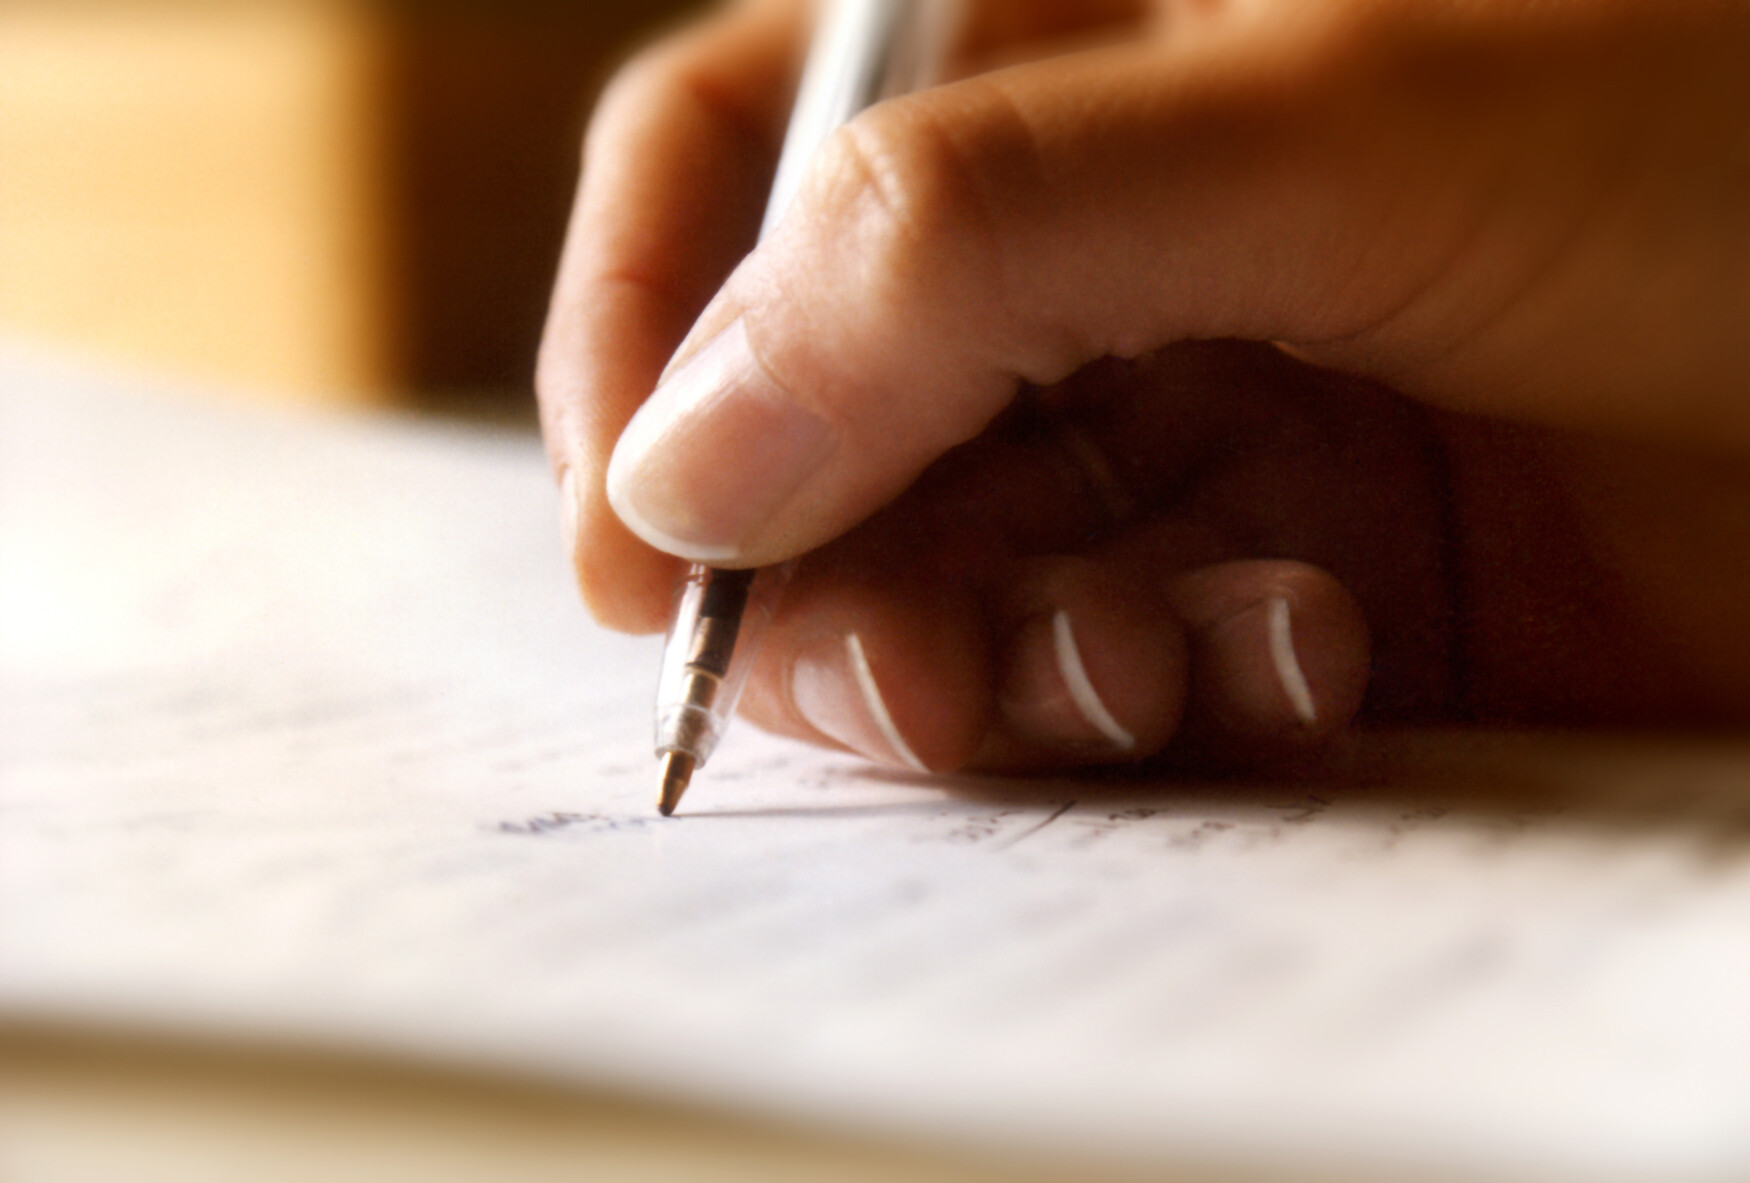 Capstone Help - The way to Identify The Best Capstone Project Writing Service